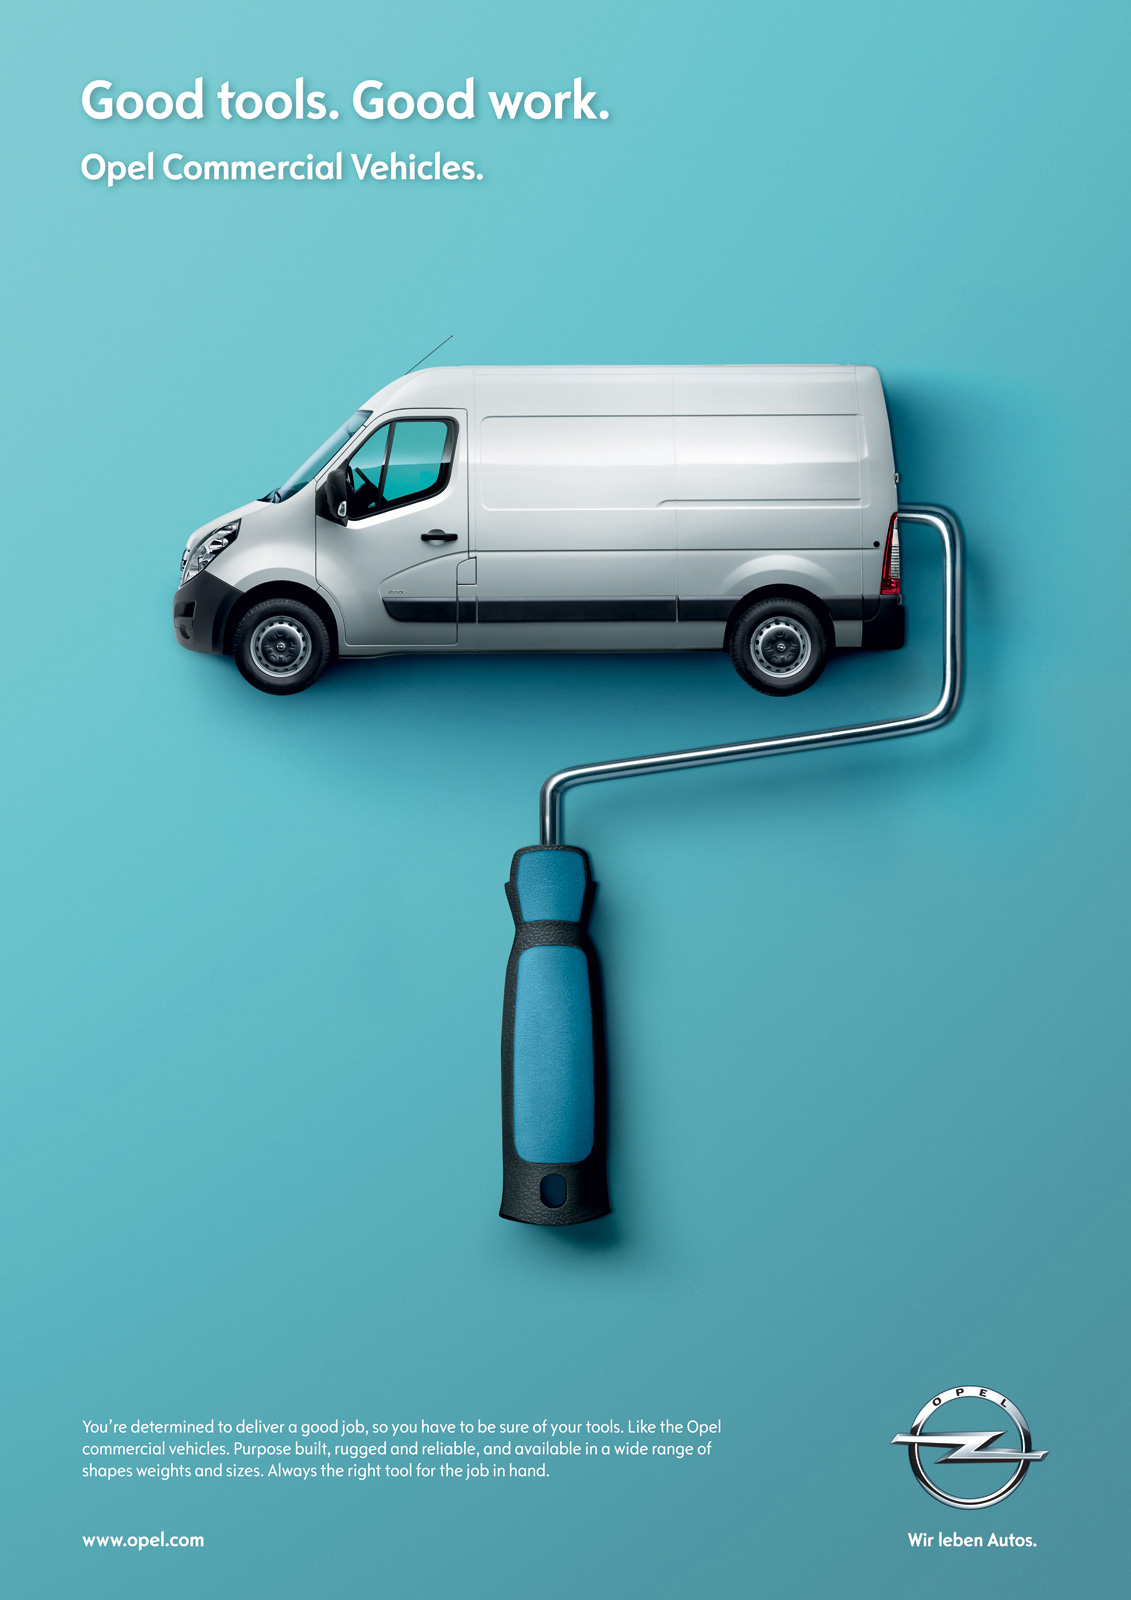 Opel Print Advert By Futurebrand: Paint roller | Ads of the World™